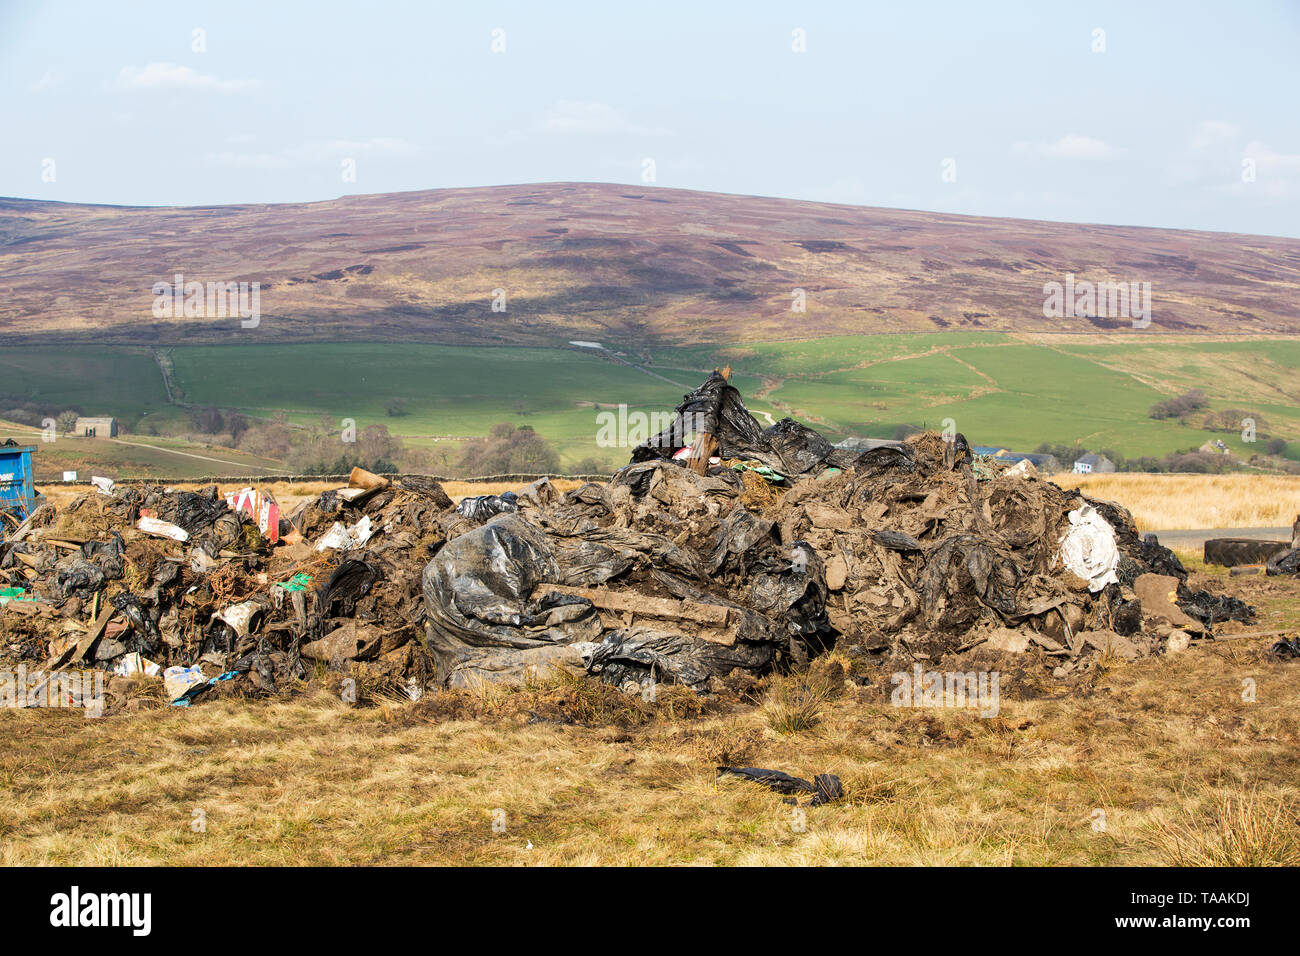 Plastic famr waste dumped by the roadside in Bowland, UK. - Stock Image